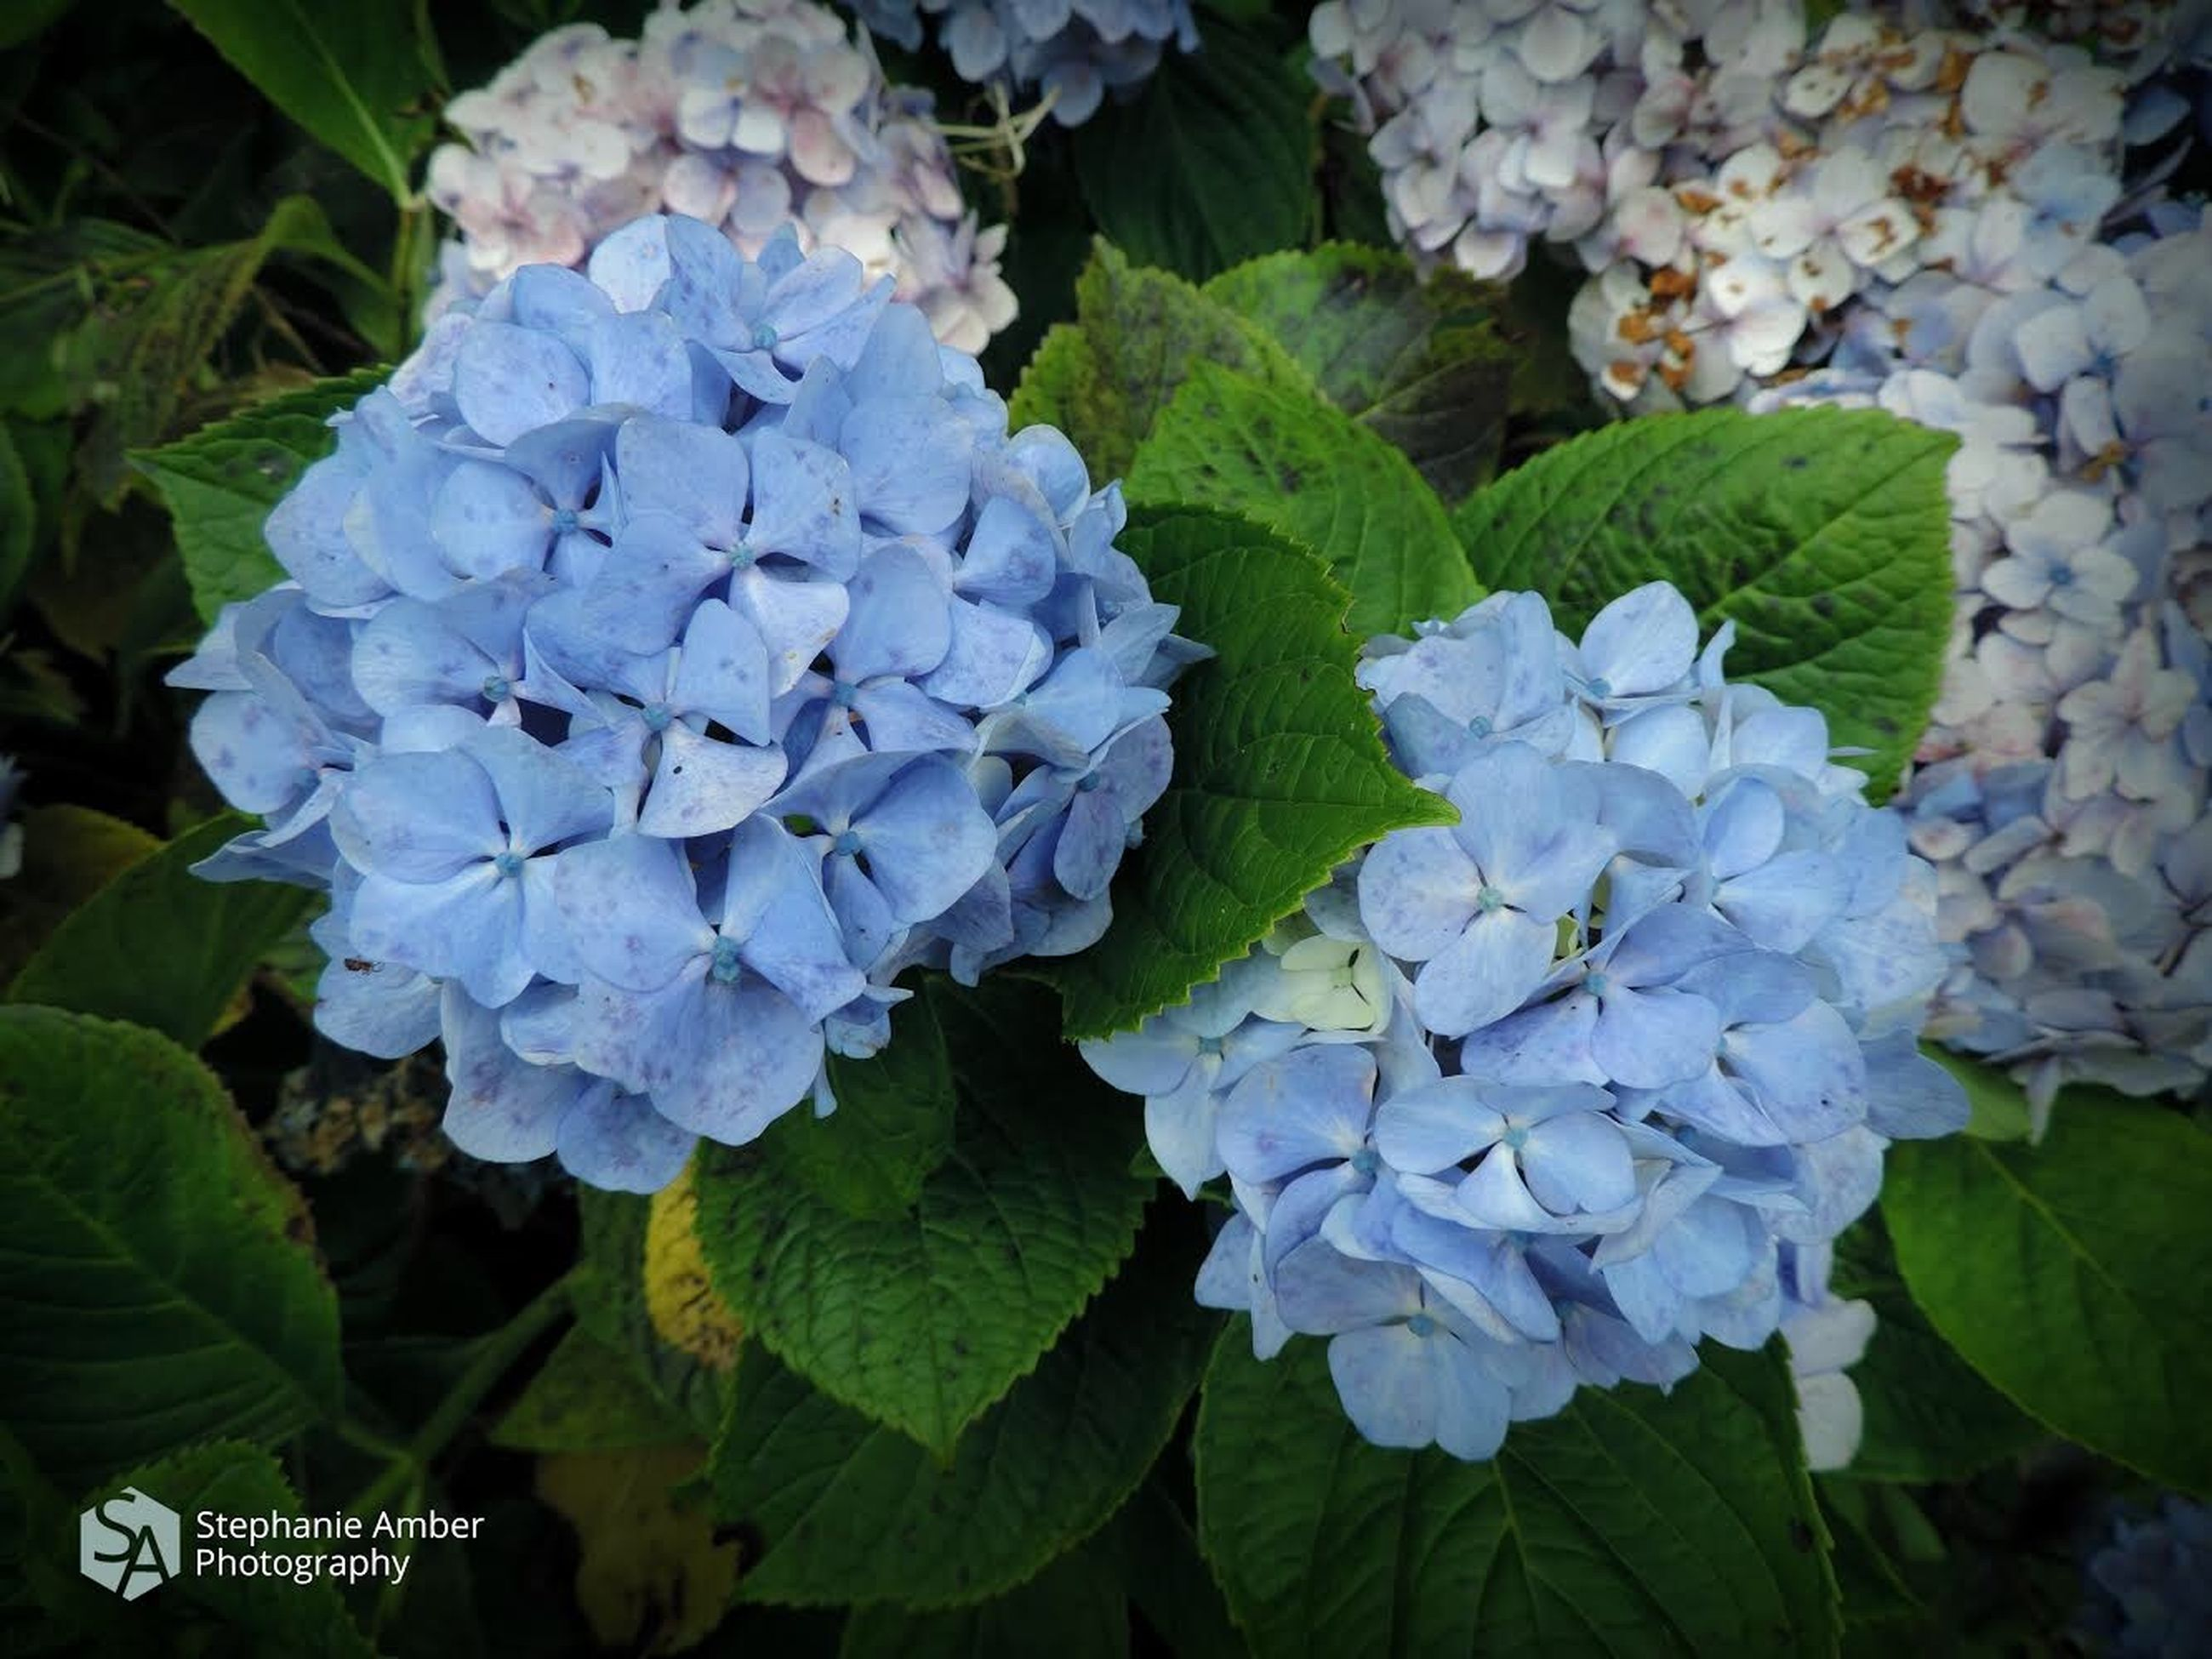 plant, beauty in nature, leaf, flowering plant, plant part, vulnerability, flower, growth, freshness, petal, fragility, hydrangea, close-up, nature, flower head, inflorescence, blue, day, purple, green color, no people, outdoors, bunch of flowers, lilac